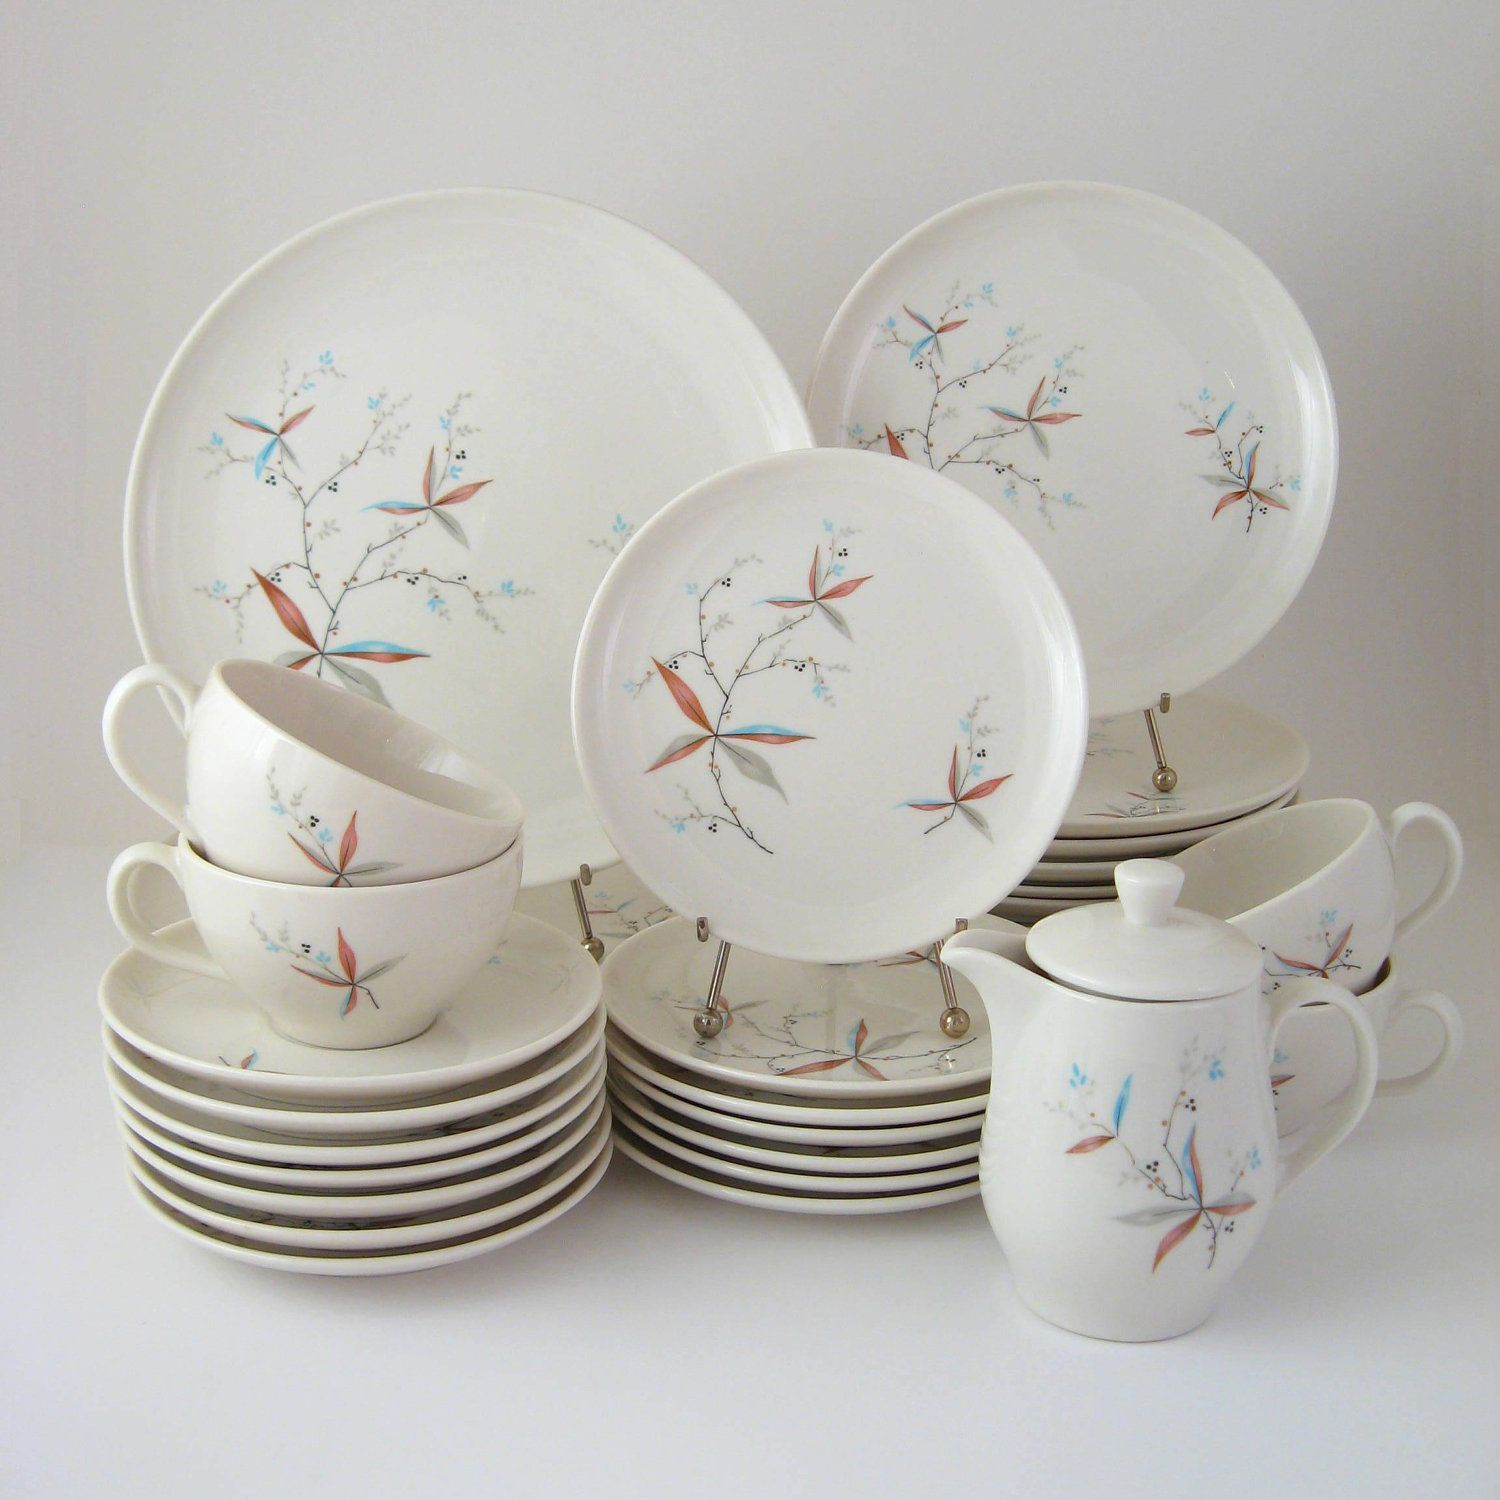 Vintage Dinnerware Set Finesse Carefree True China by Syracuse Vintage Dishes 1950\u0027s 1960\u0027s & Vintage Dinnerware Set Finesse Carefree True China by Syracuse ...